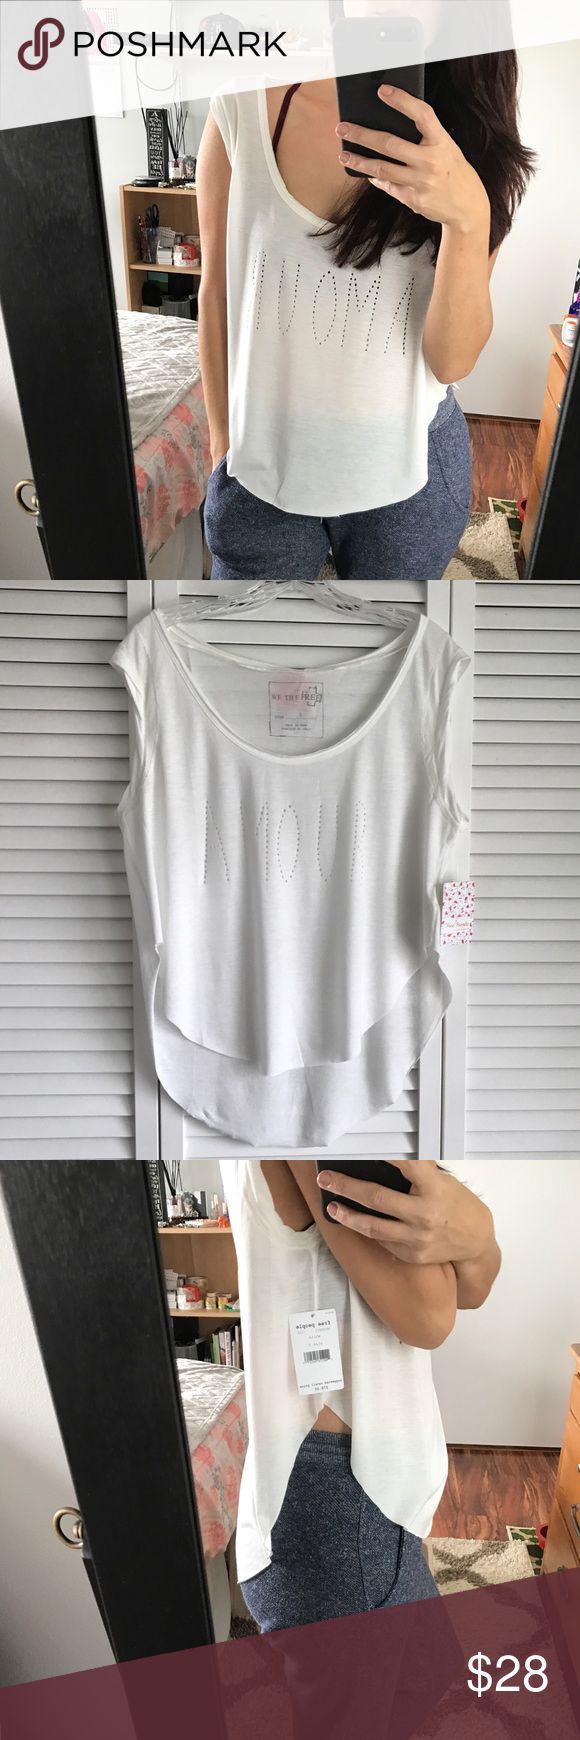 "NWT Free People White ""Amour"" Tee Brand new with tags.  Has a flaw on the lower back (see pic).  Price reflects this.  This top is super soft and has the word Amour (love) cut out in the front.  It has a high low hem.  I have another listing in my closet for sizes XS, M, L.  Please ask any questions before making your purchase. Free People Tops Tees - Short Sleeve"